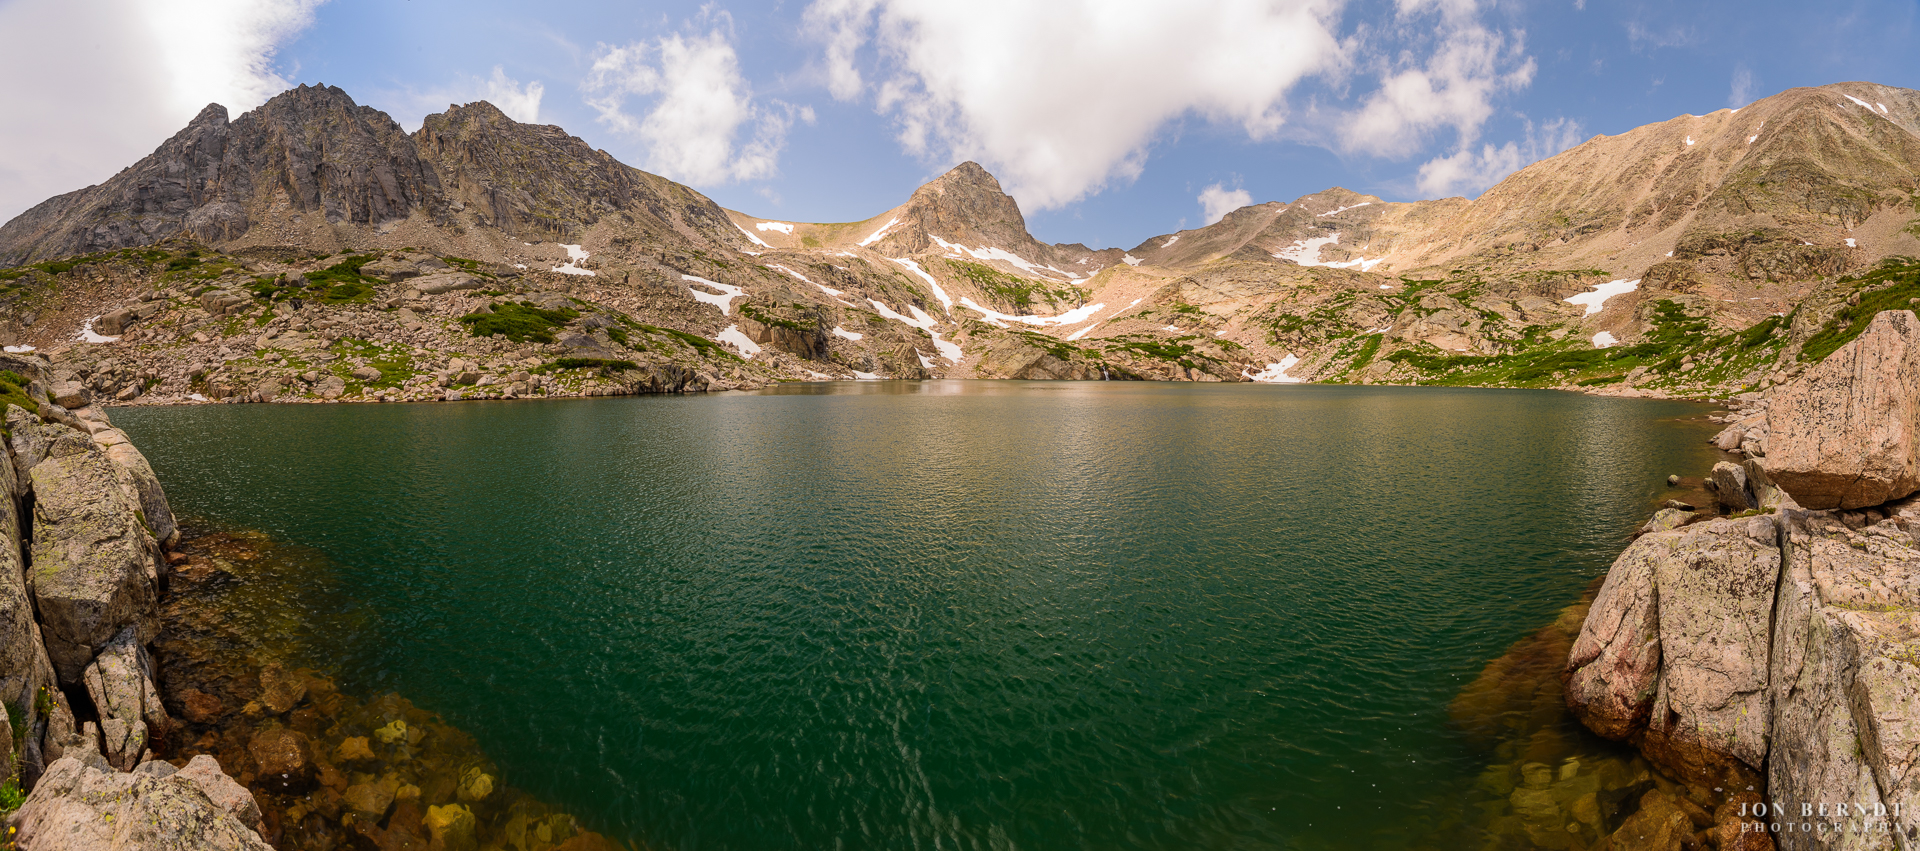 Blue Lake can be reached from the Mitchell Lake trailhead in Brainard Lake Recreation Area. The hike is a five mile round trip to this elevation at a little over 11,300 feet.